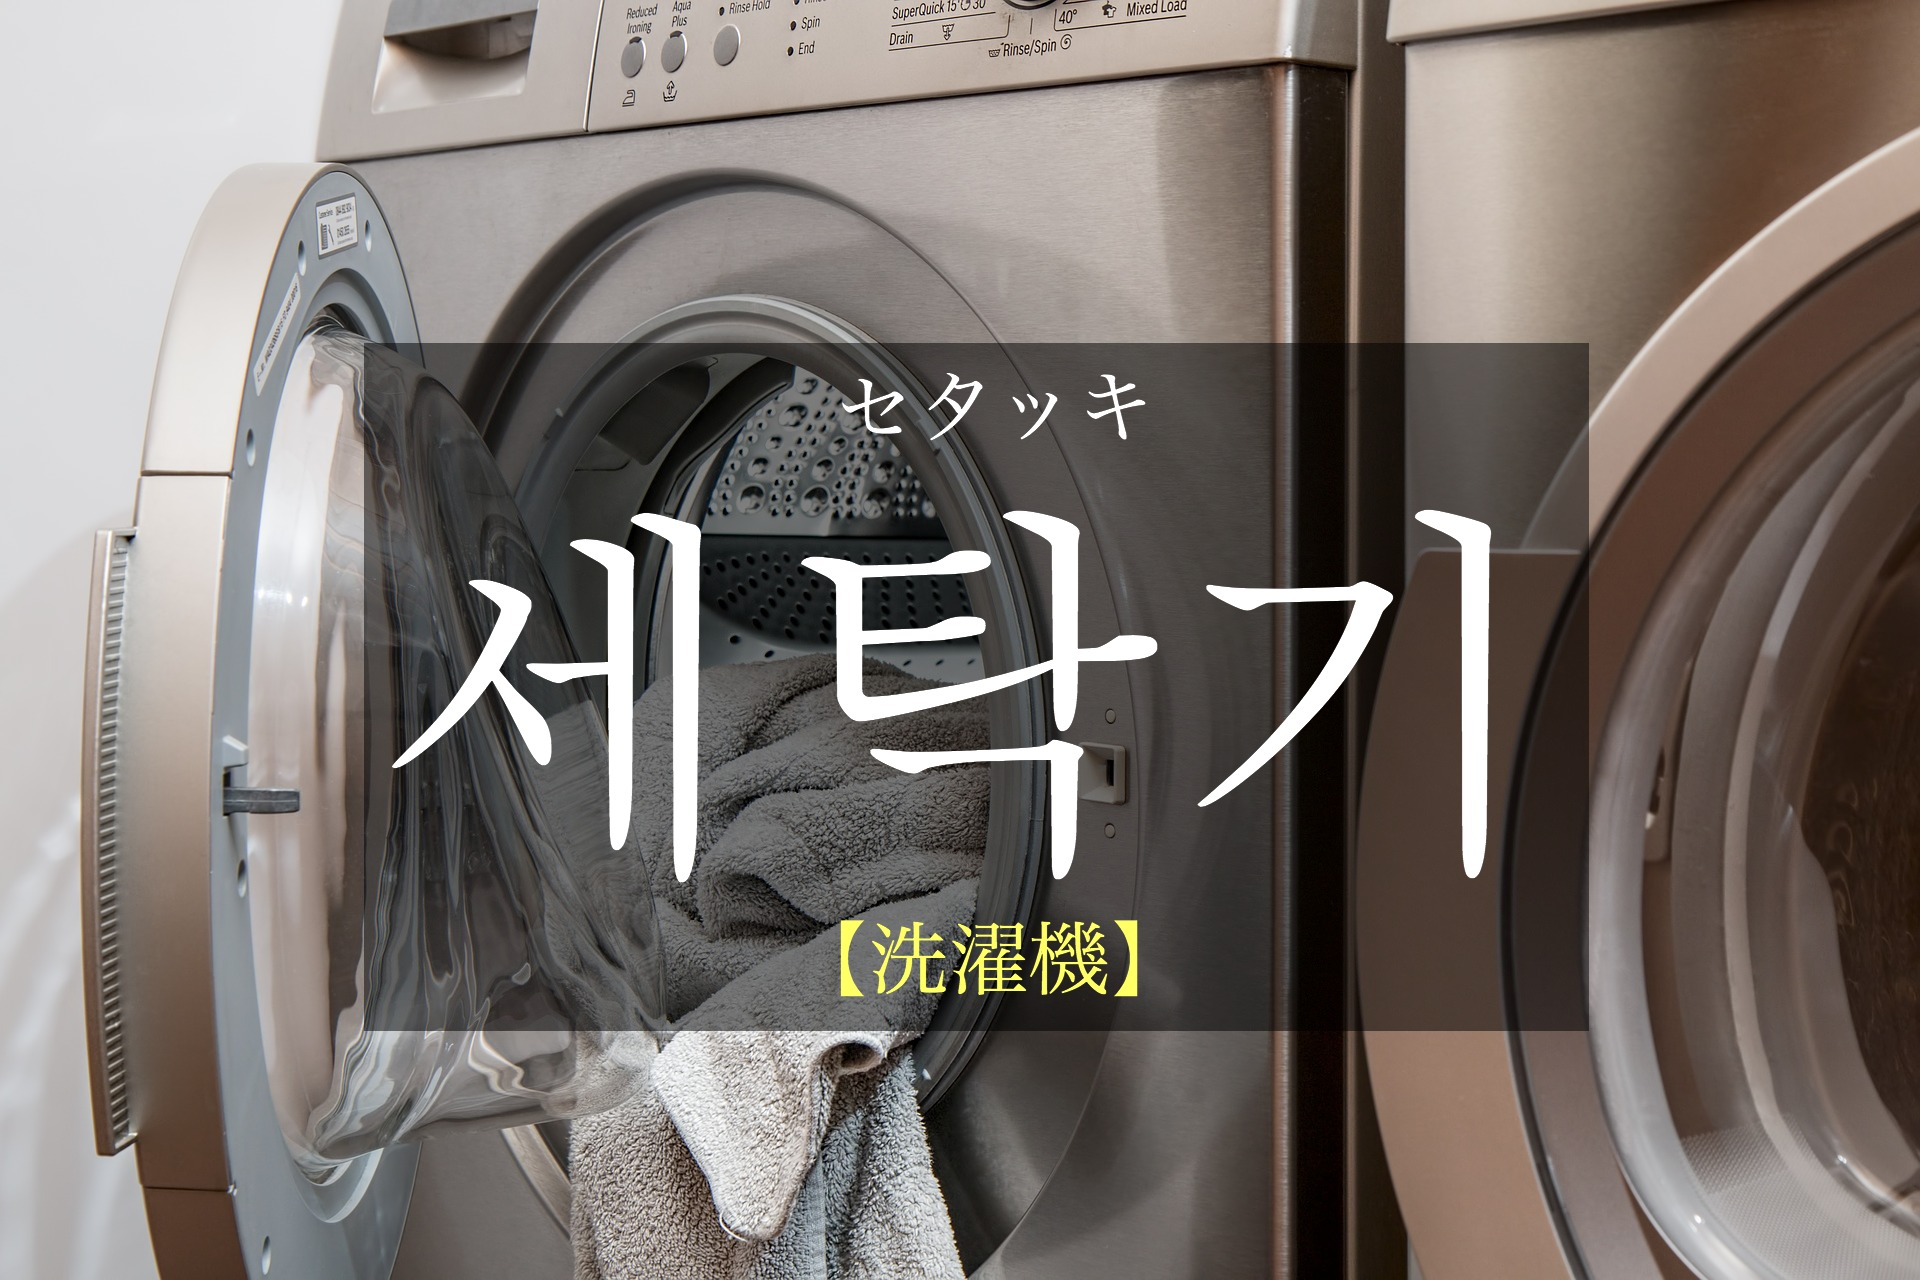 koreanword-washer